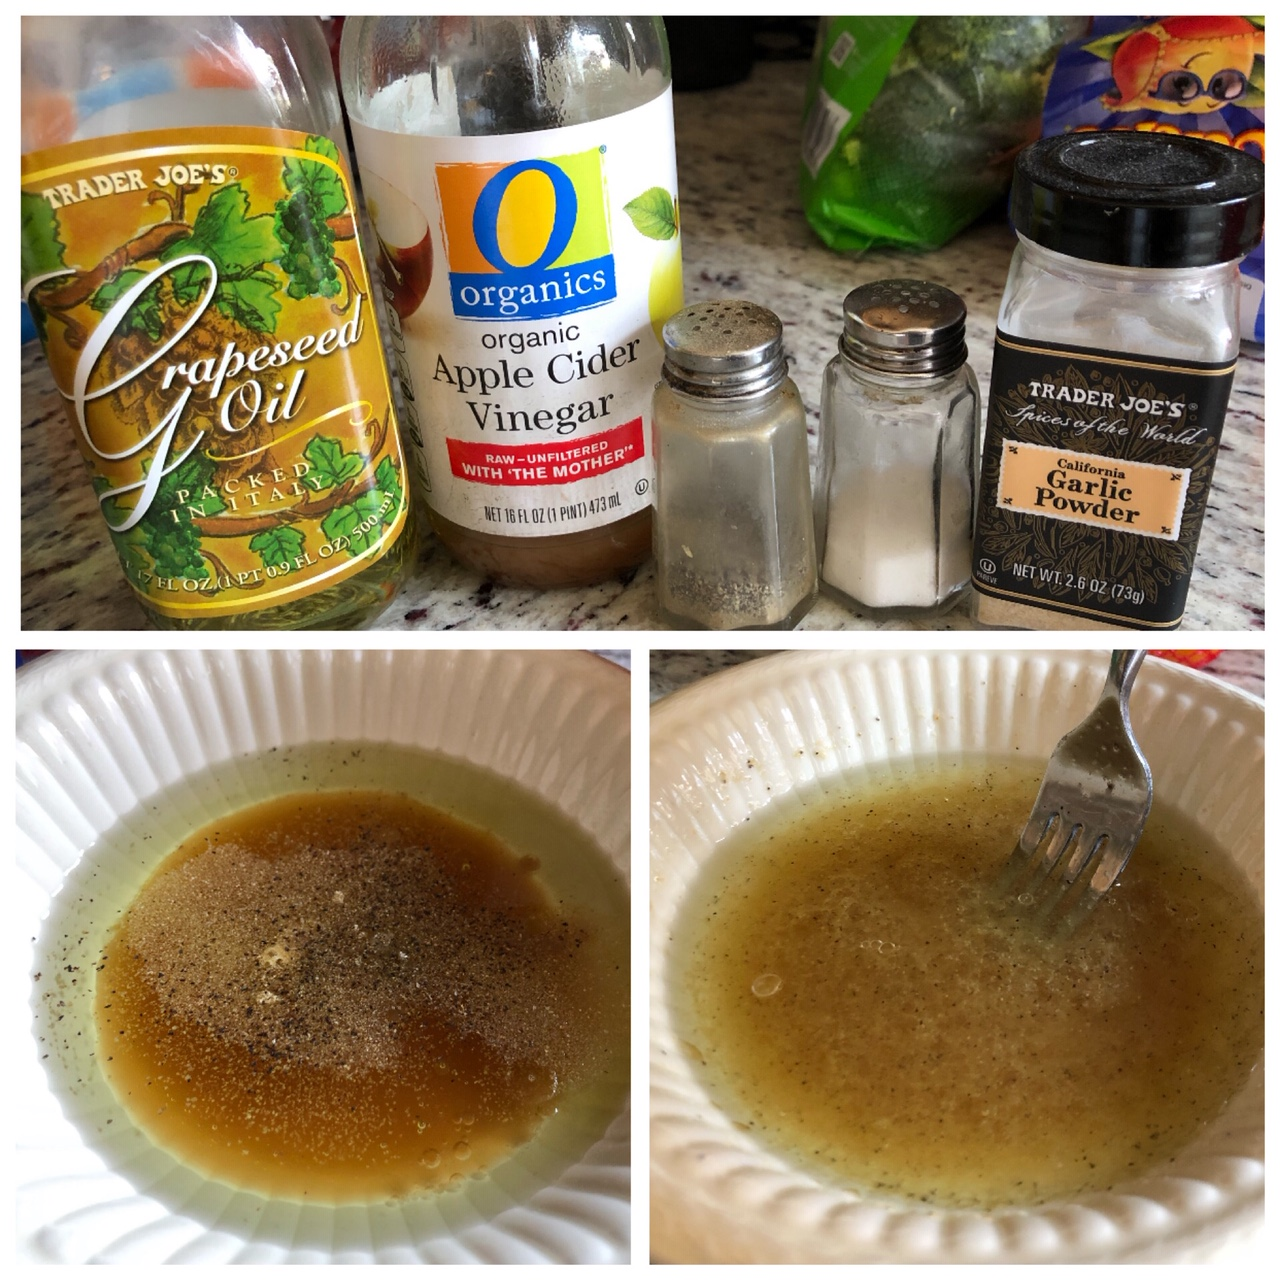 Pictured above in the top photo: Salad dressing ingredients, Pictured on the bottom left photo: ingredients in bowl before mixing, Pictured on the bottom right: After mixing, you have a delicious salad dressing!